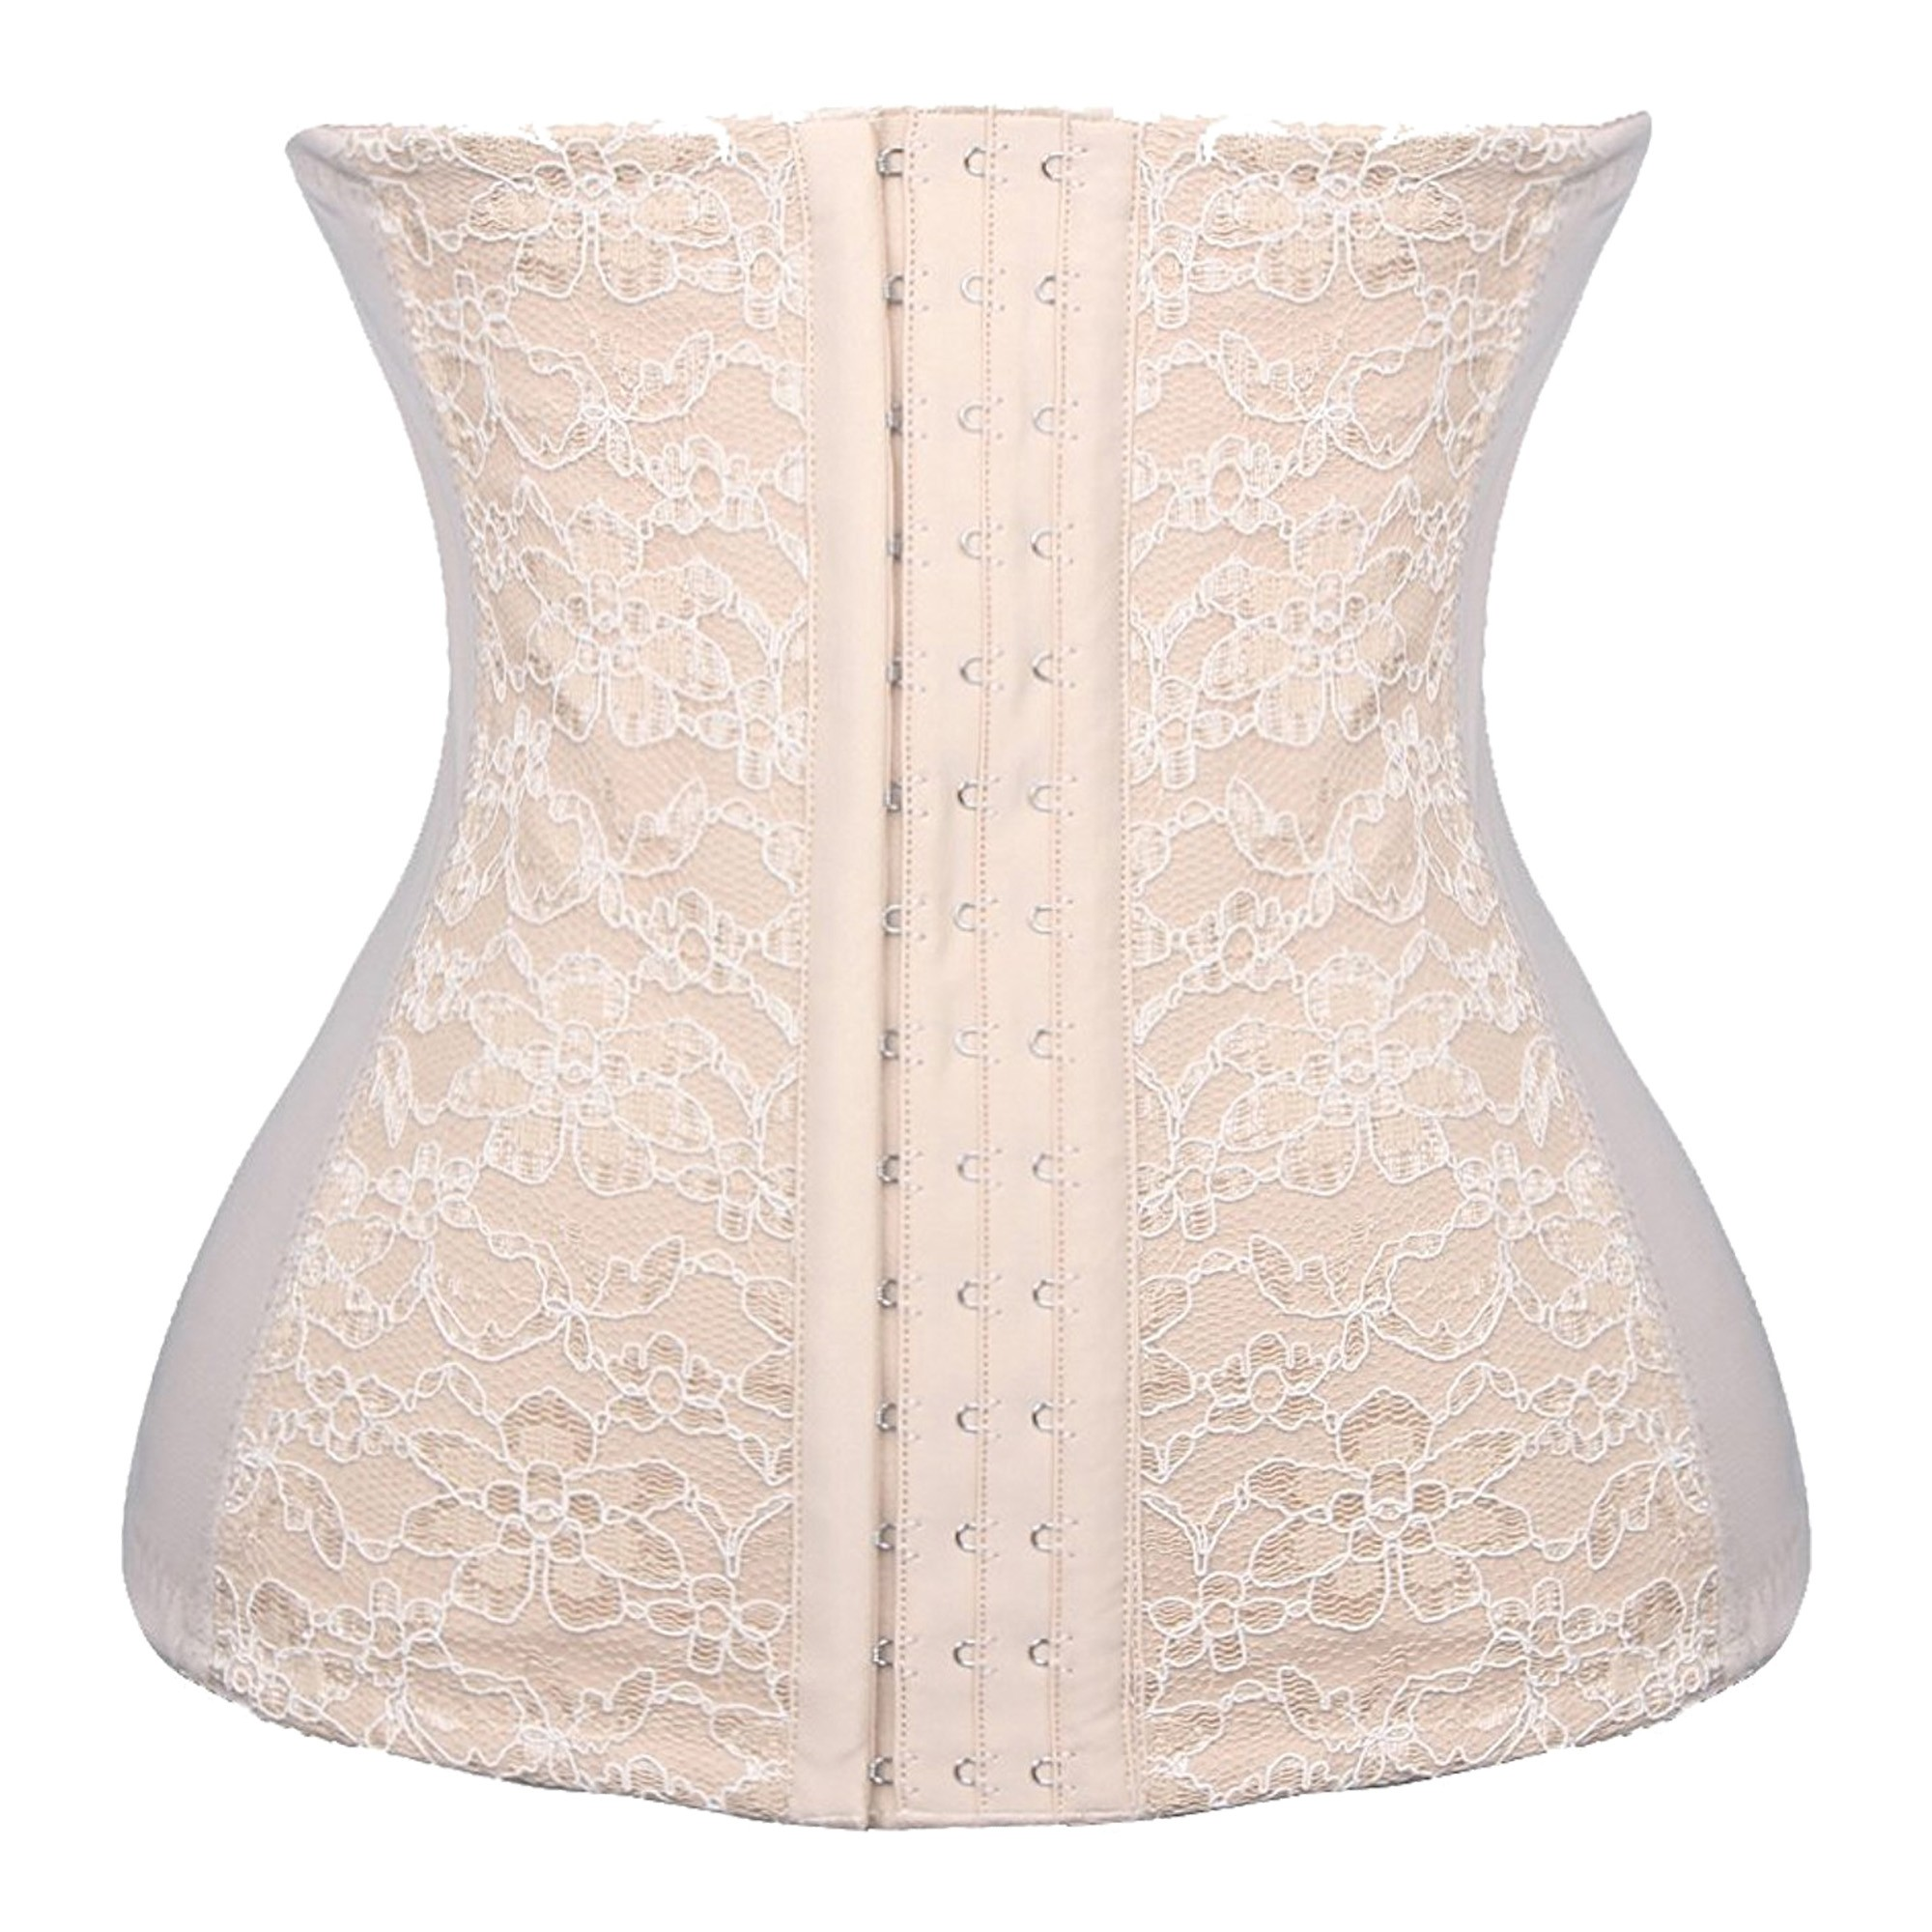 Buy A High Quality Nude 9 Steel Bone Wedding Corset For R49500 In South Africa -1634